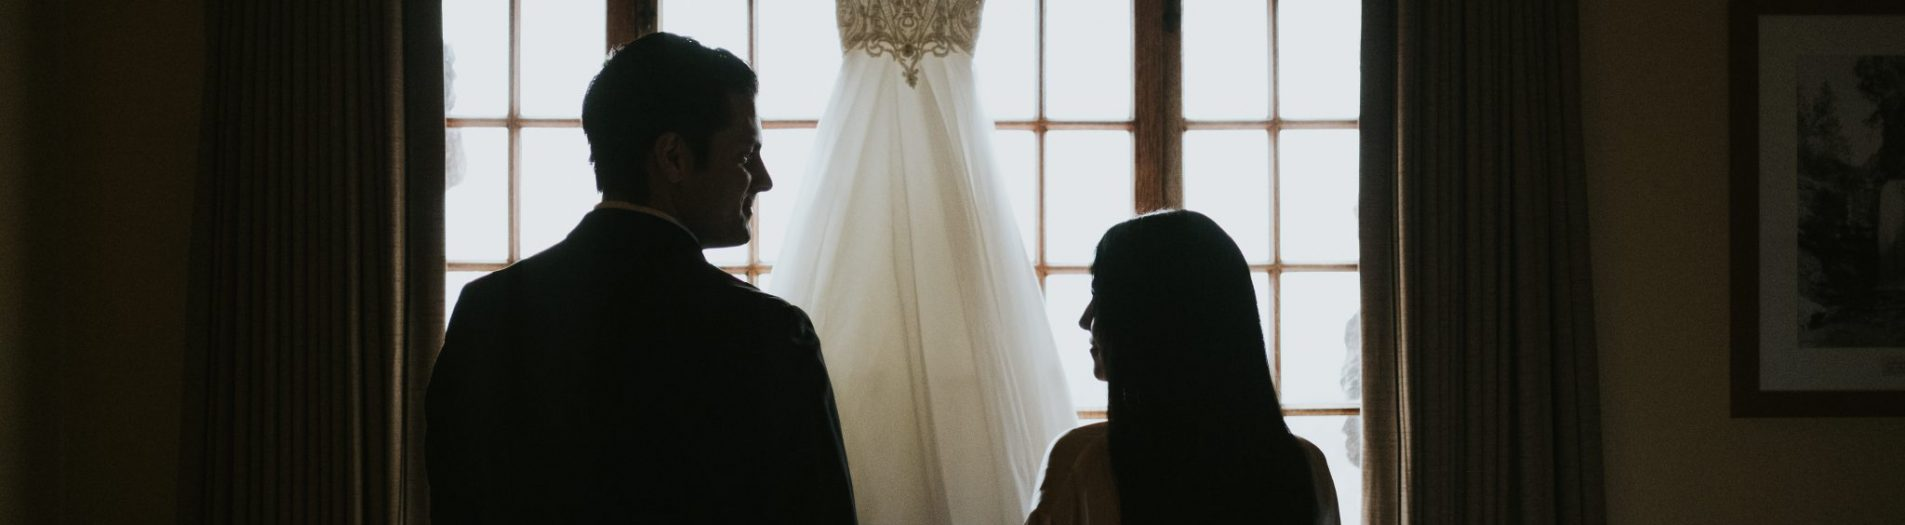 Wedding Tips to Help the Day Go Nice and Smooth